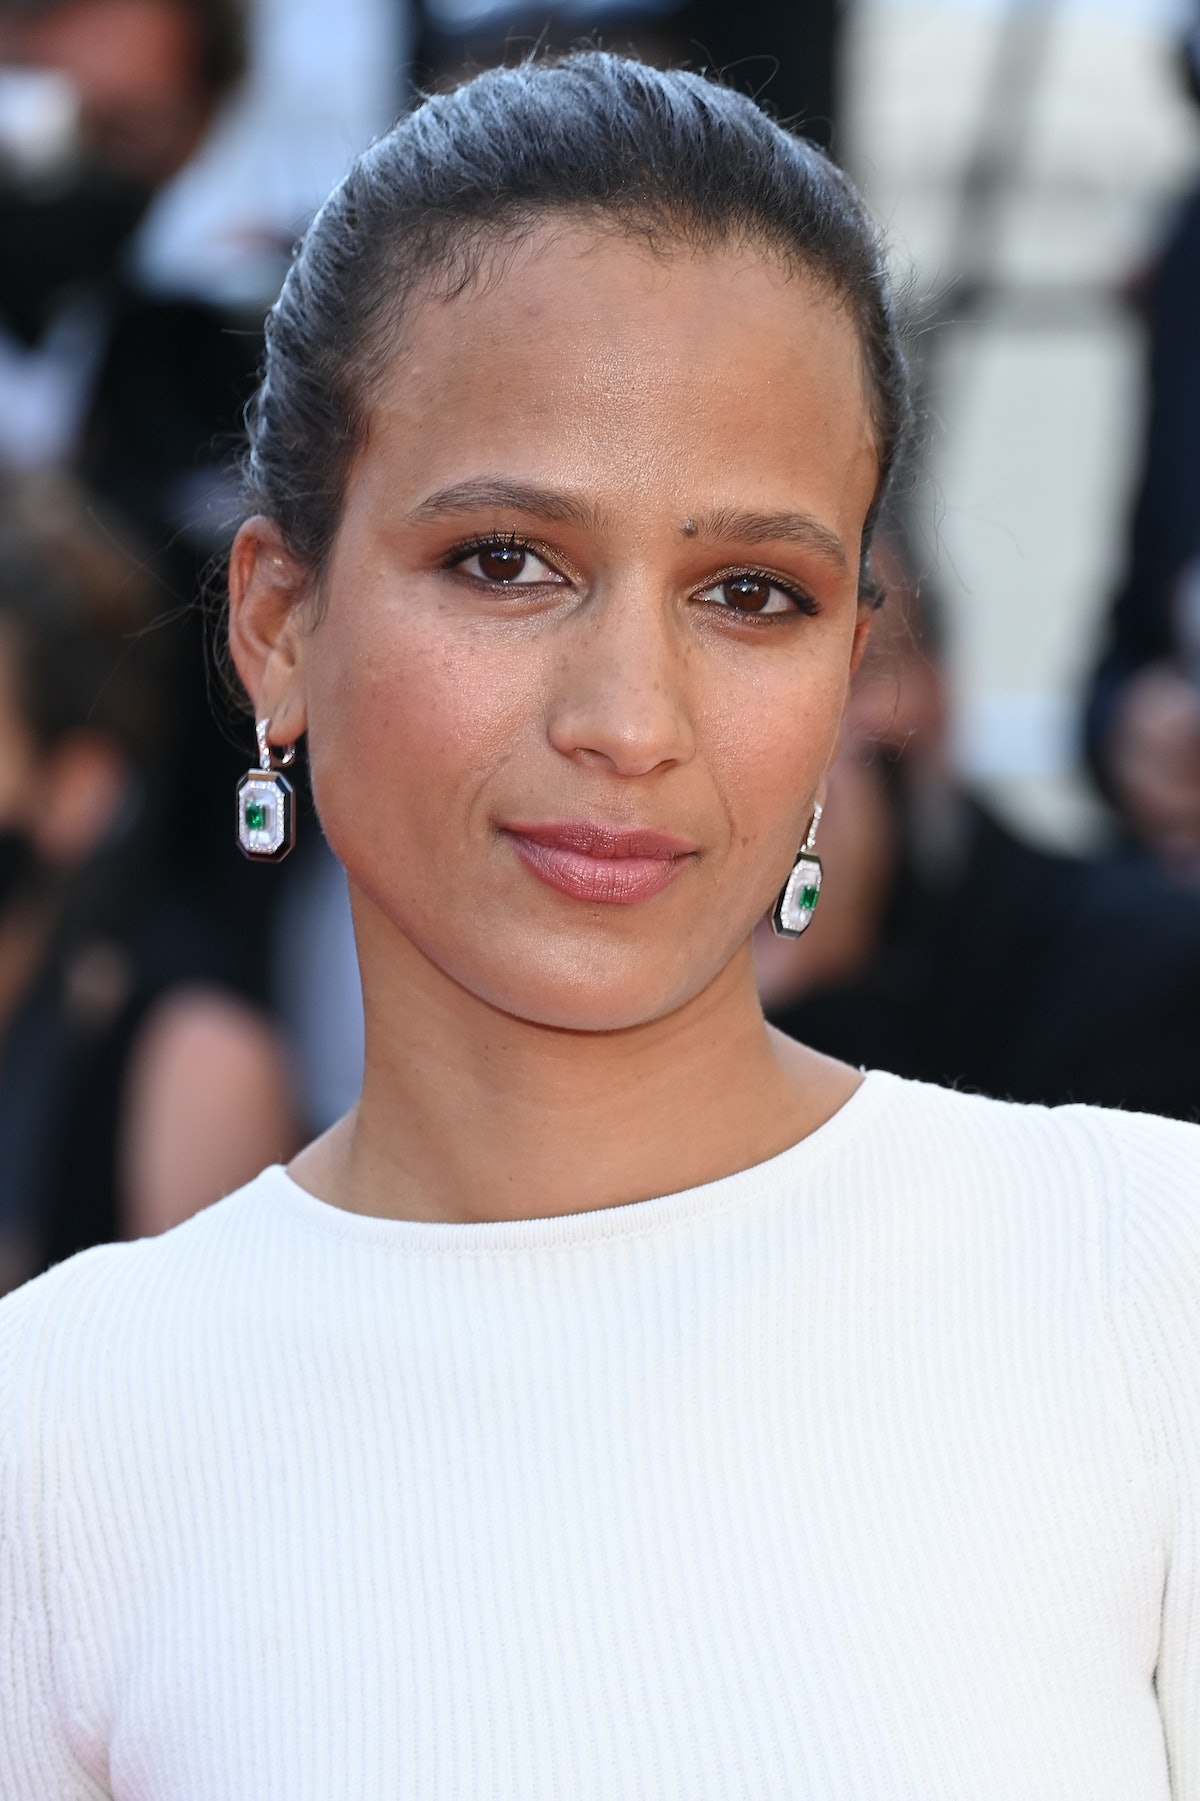 """CANNES, FRANCE - JULY 09: Jury member Mati Diop attends the """"Benedetta"""" screening during the 74th annual Cannes Film Festival on July 09, 2021 in Cannes, France. (Photo by Daniele Venturelli/WireImage)"""